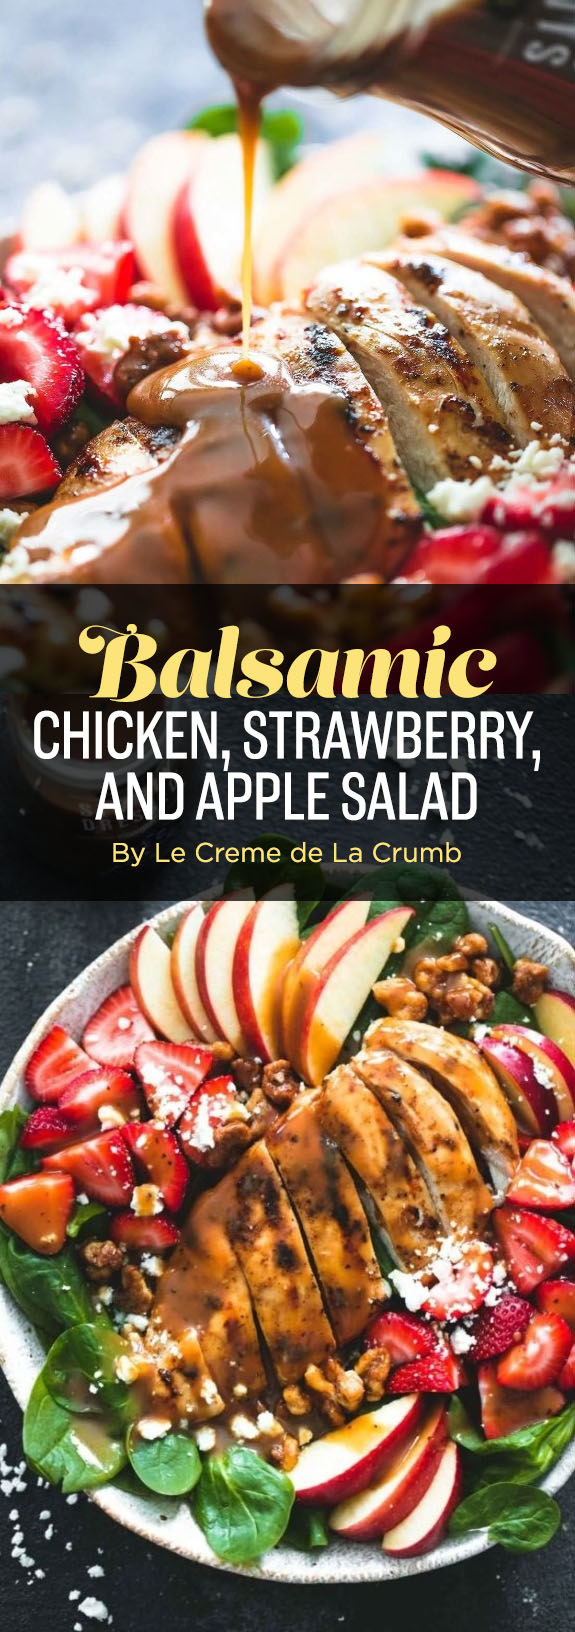 Balsamic Chicken, Strawberry, and Apple Salad